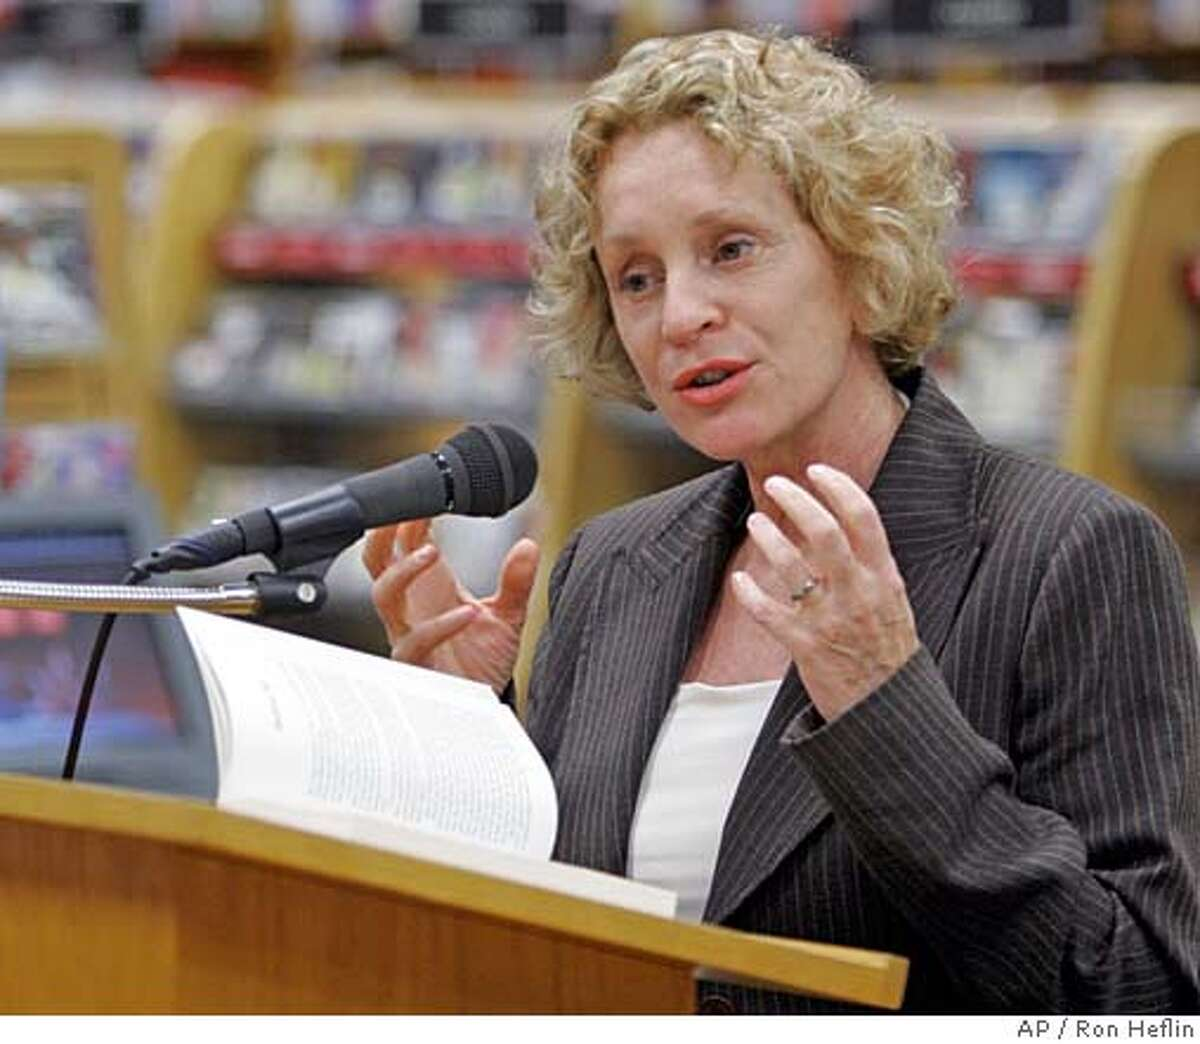 ** ADVANCE FOR TUESDAY, NOV. 21 **British writer Philippa Gregory speaks at a Dallas bookstore during a stop on her U.S. book tour Monday, Oct. 2, 2006. Gregory says that to write good historical fiction, one must forget that the ending is a foregone conclusion. (AP Photo/Ron Heflin) ADVANCE FOR TUESDAY, NOV. 21. AN OCT. 2, 2006, PHOTO